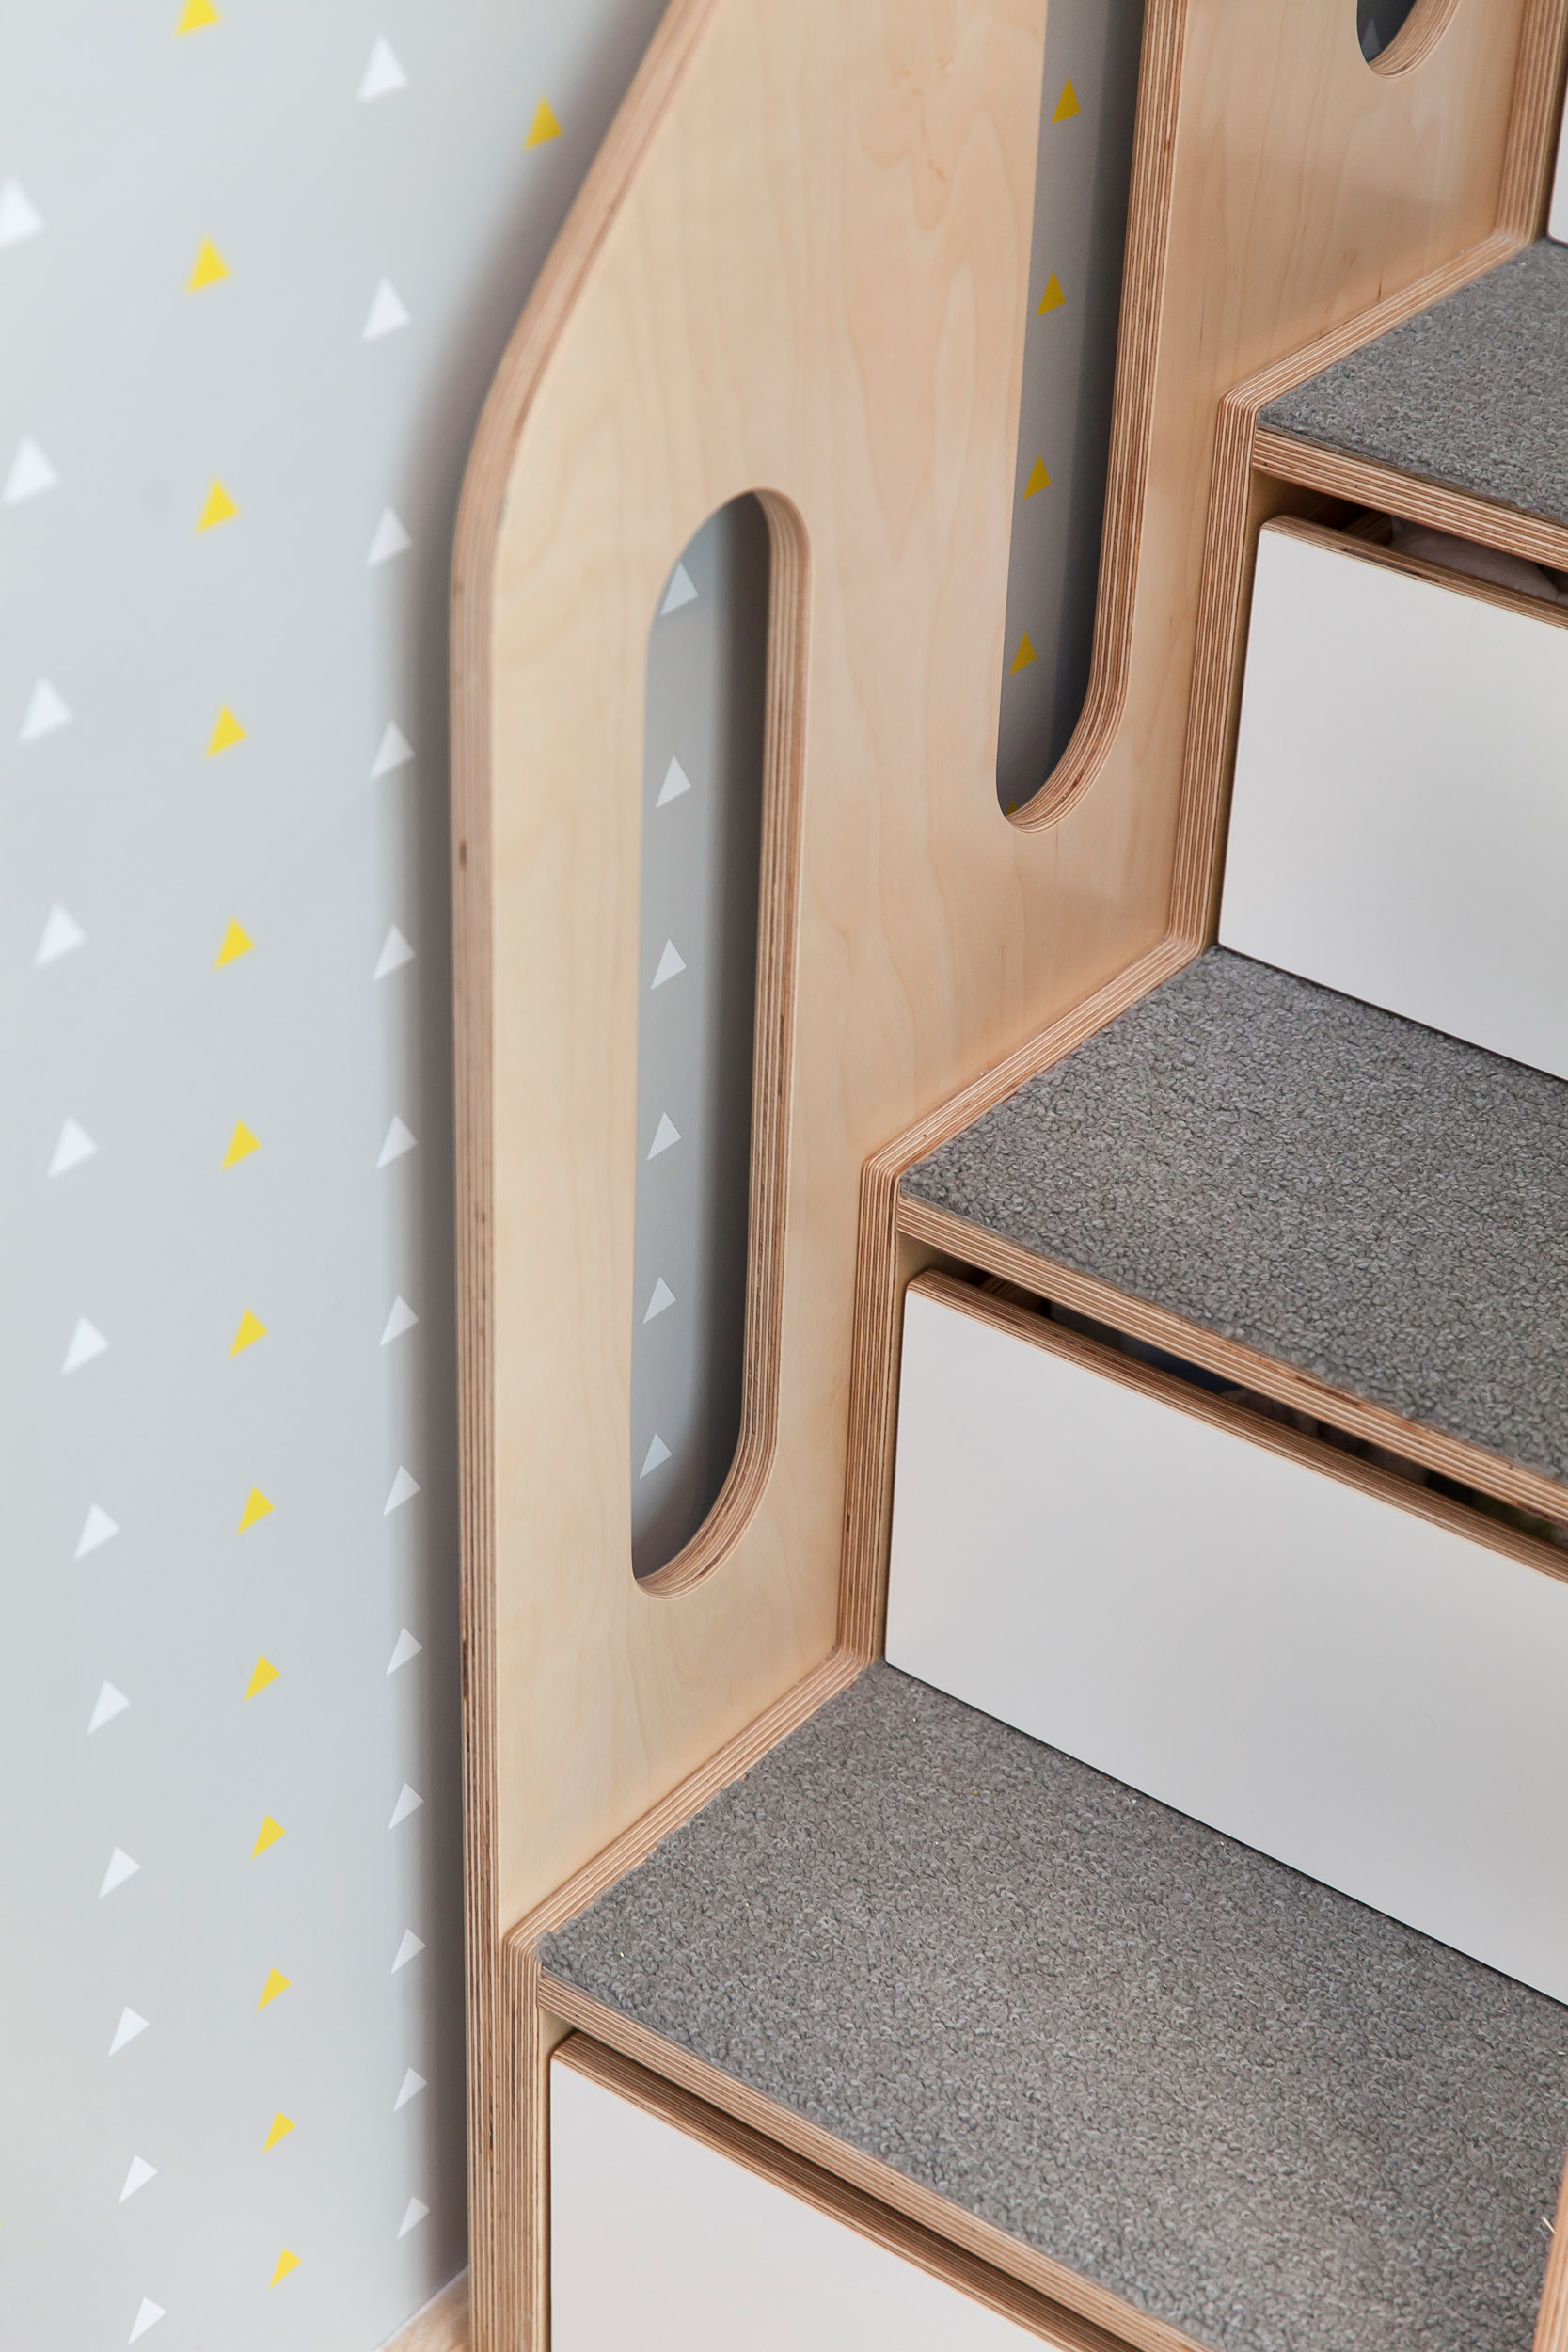 Detail LoLo Hi w_ stairs, handrails, trundle_18.jpg